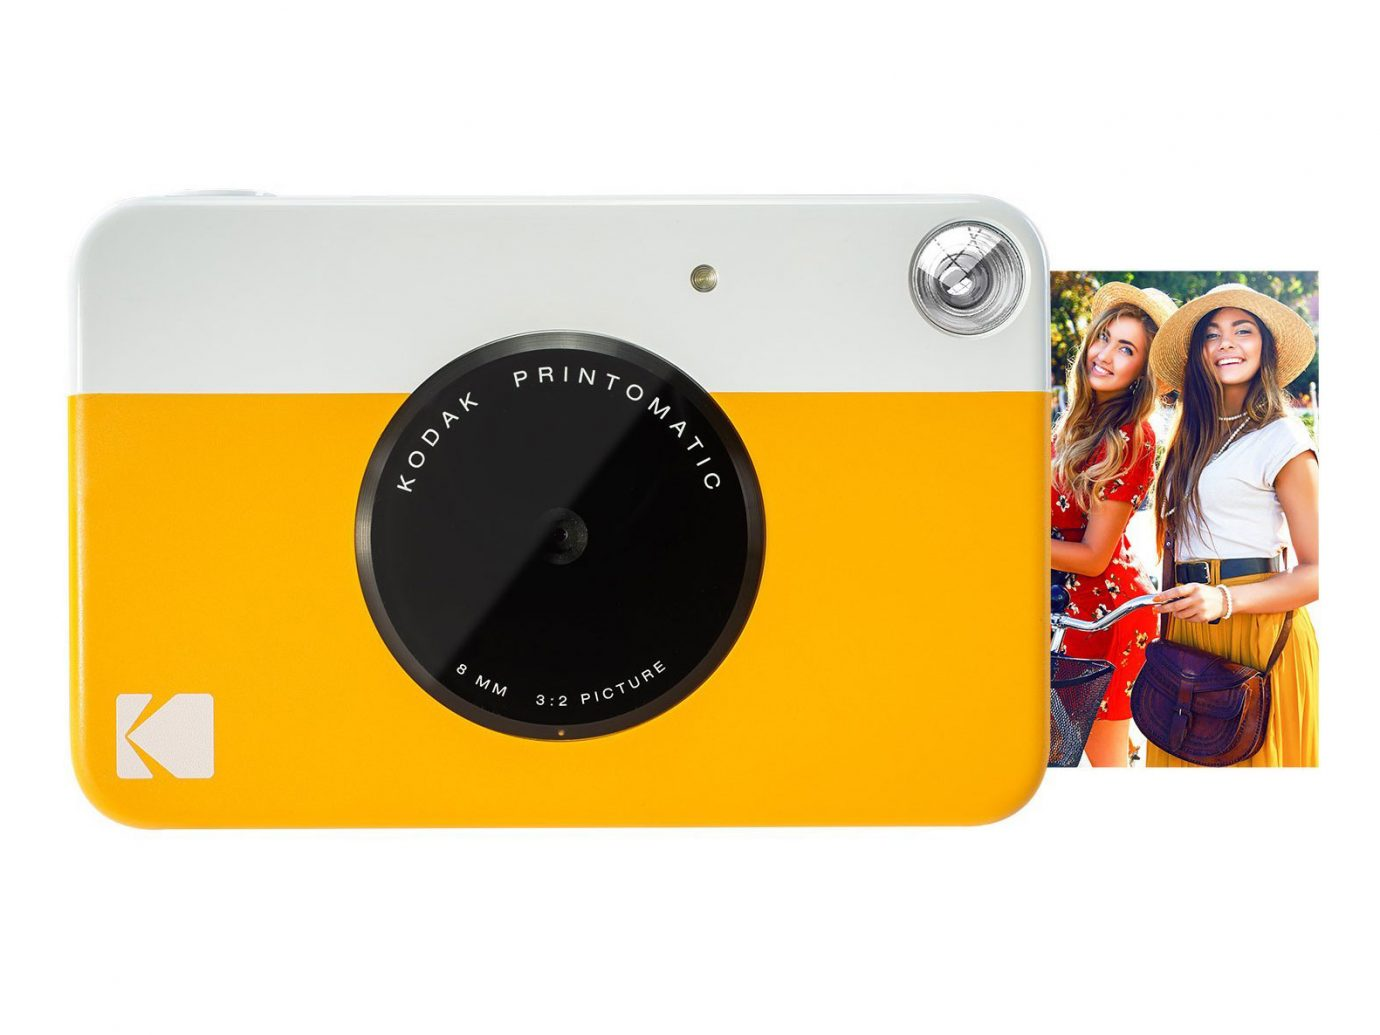 Kodak Printomatic Digital Instant Camera